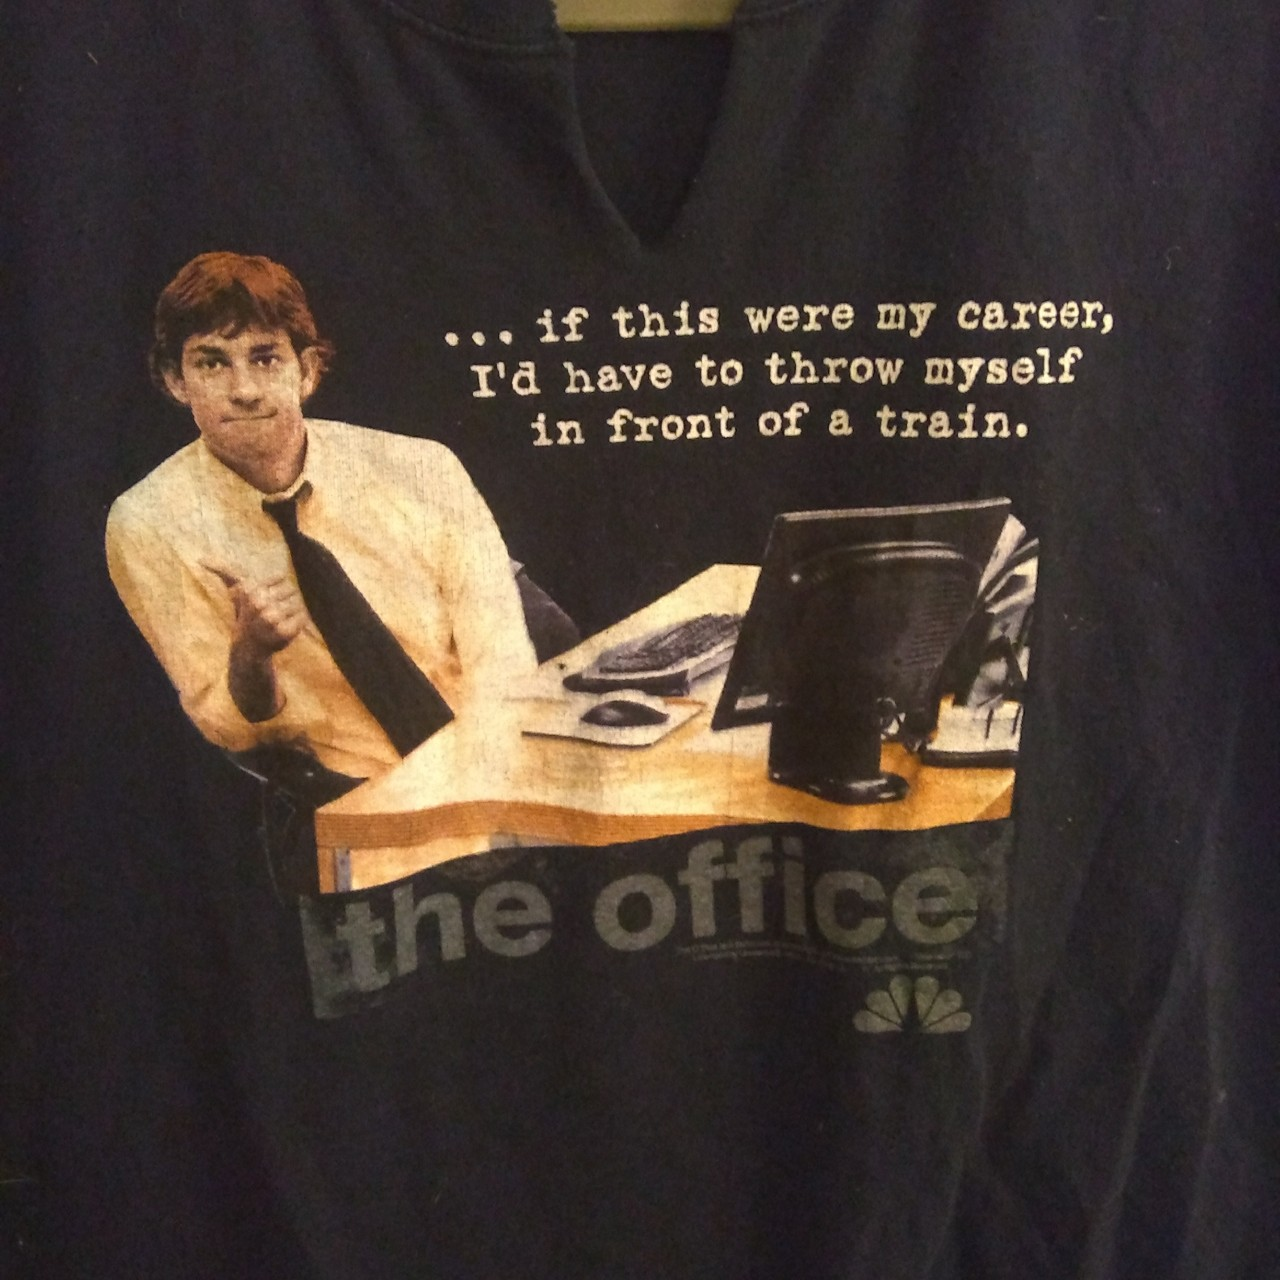 THE OFFICE official merch. Jim Halpert quote faded... - Depop